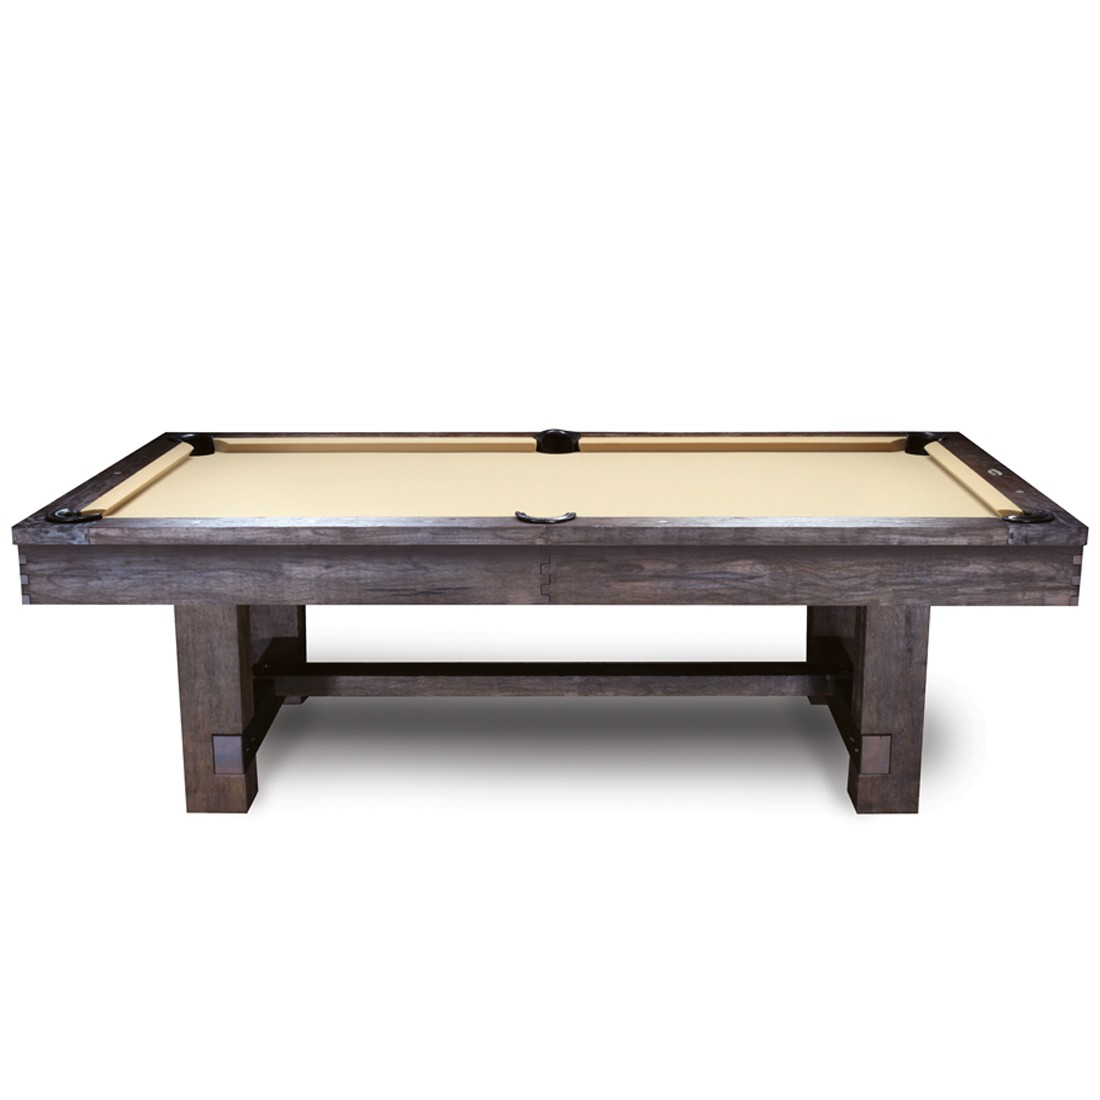 7 And 8 Reno Pool Table Antique Walnut